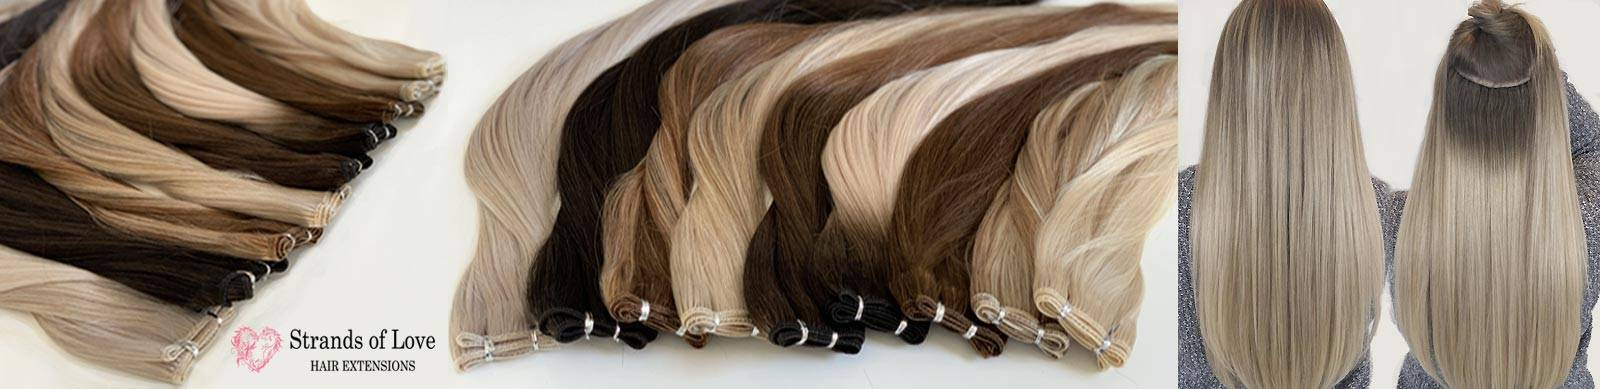 Strands Of Love Hair Extensions Wefts Image